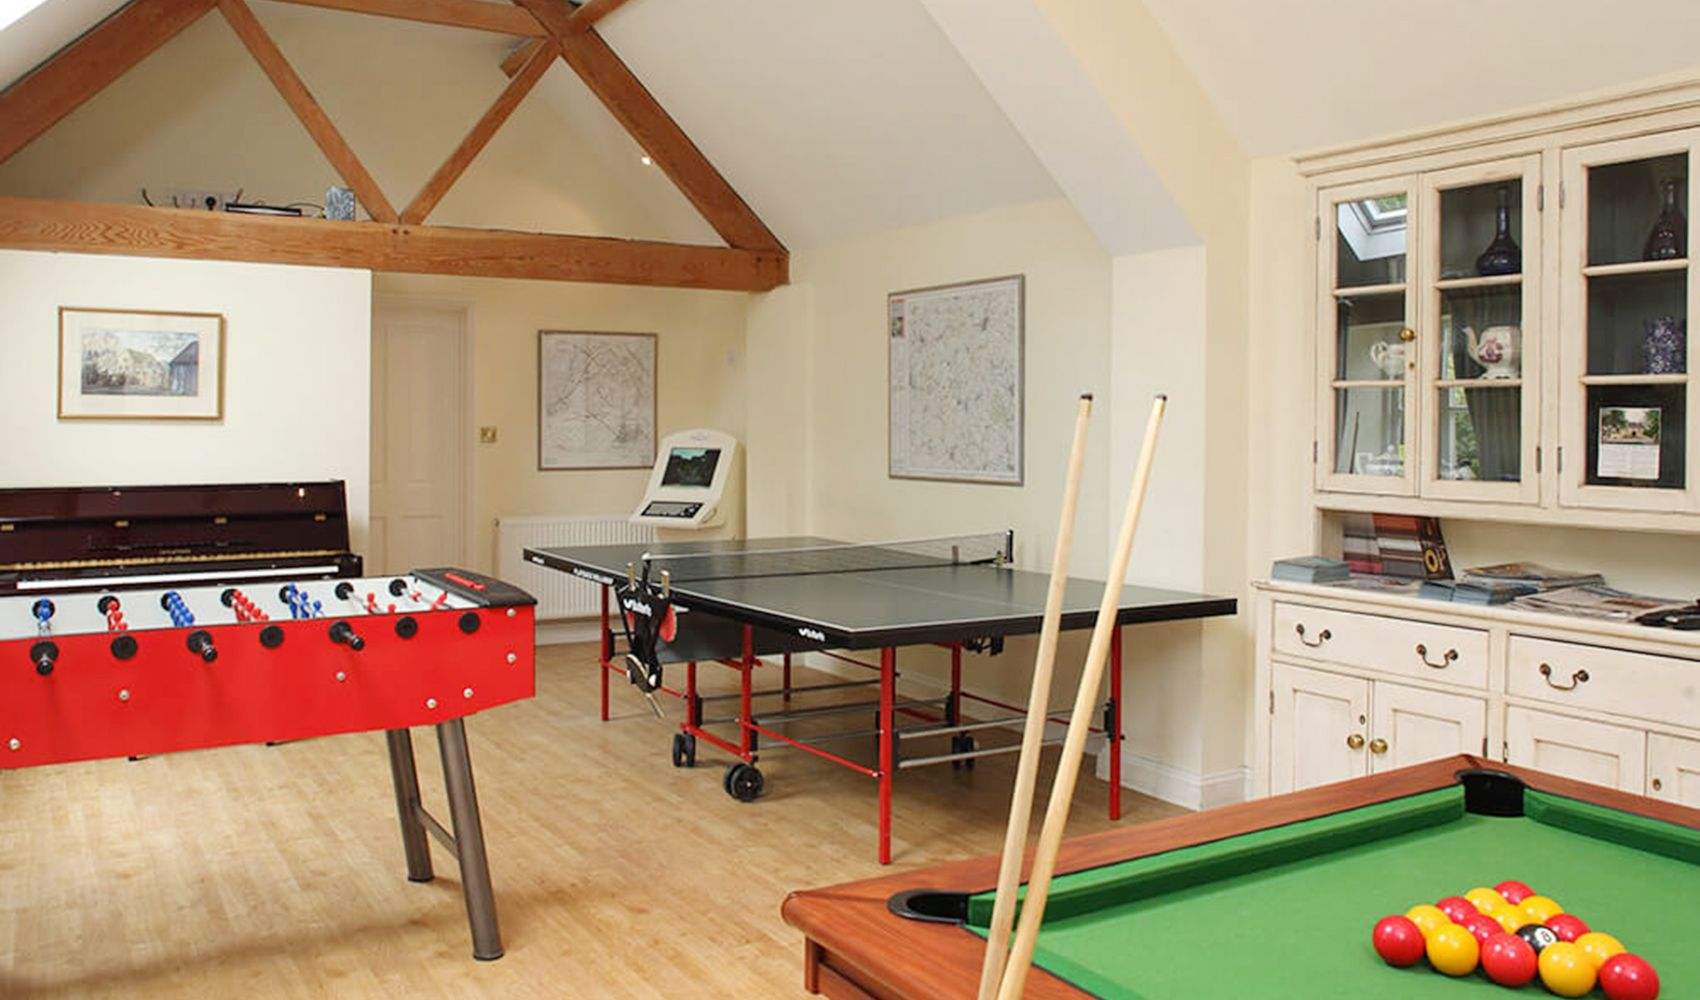 Shared games room with DVDs, table tennis, pool table, football table & a TV